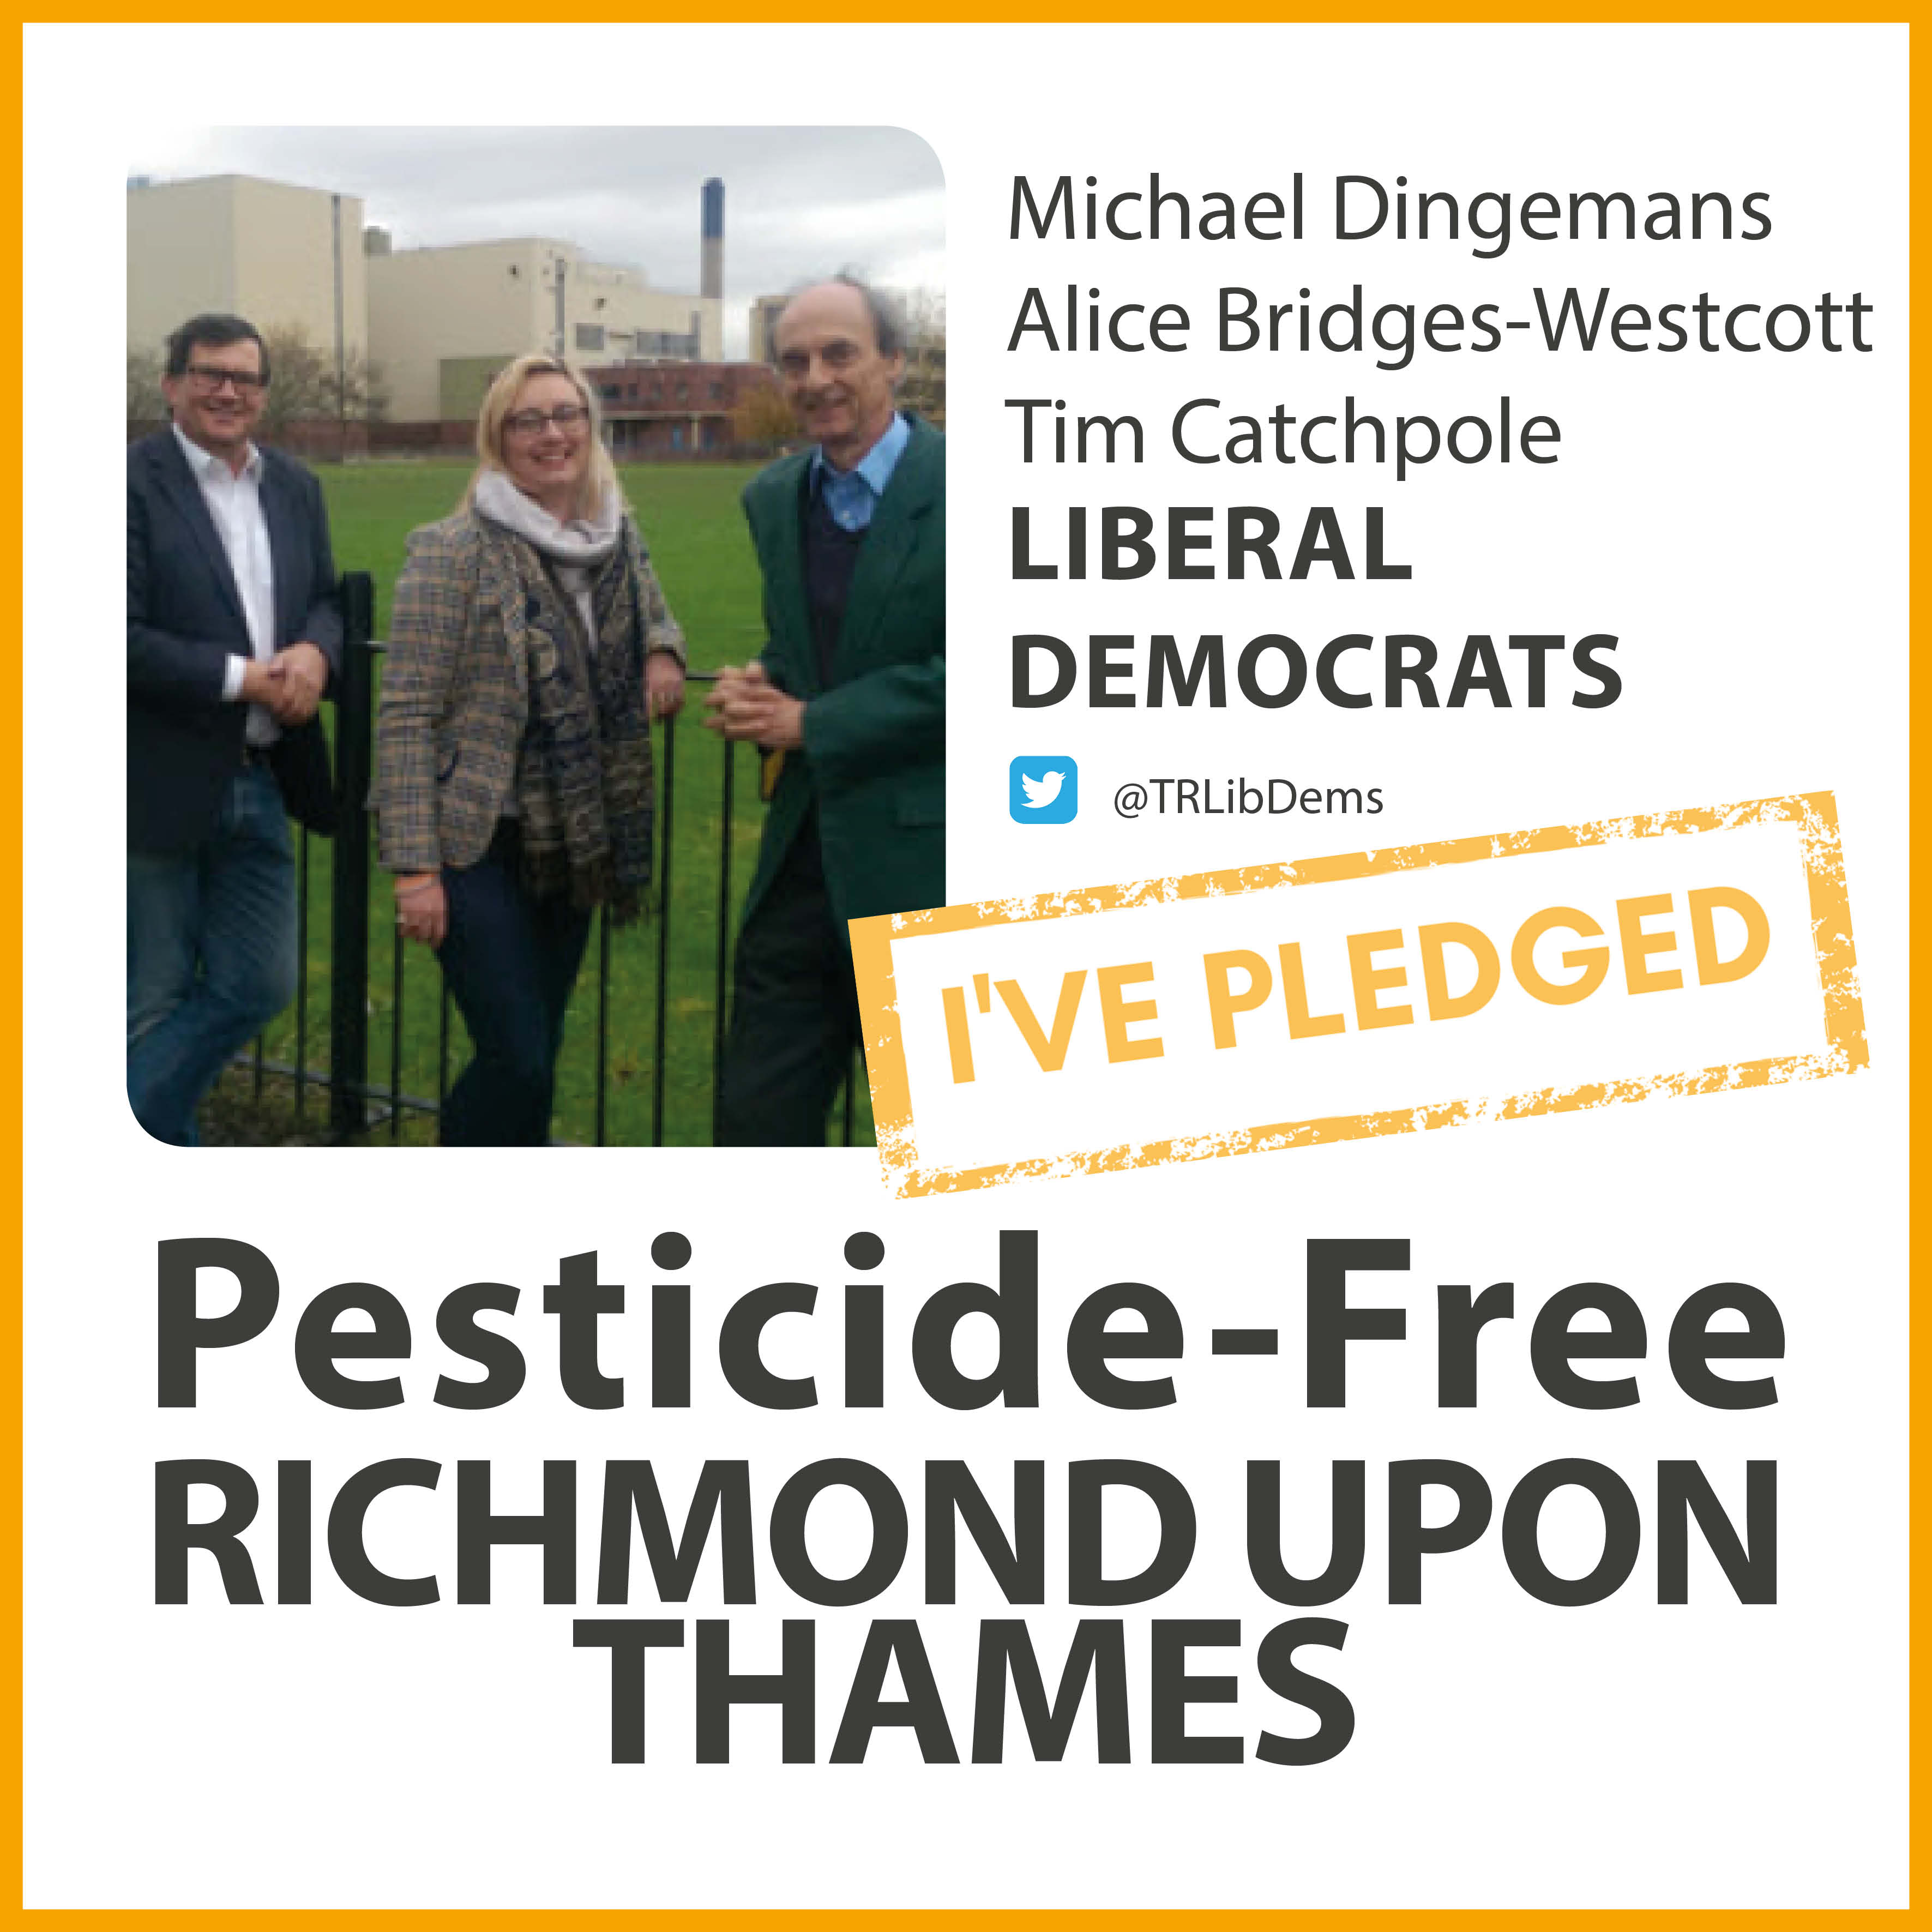 Mortlake and Barnes Common Lib Dems have taken the pesticide-free pledge